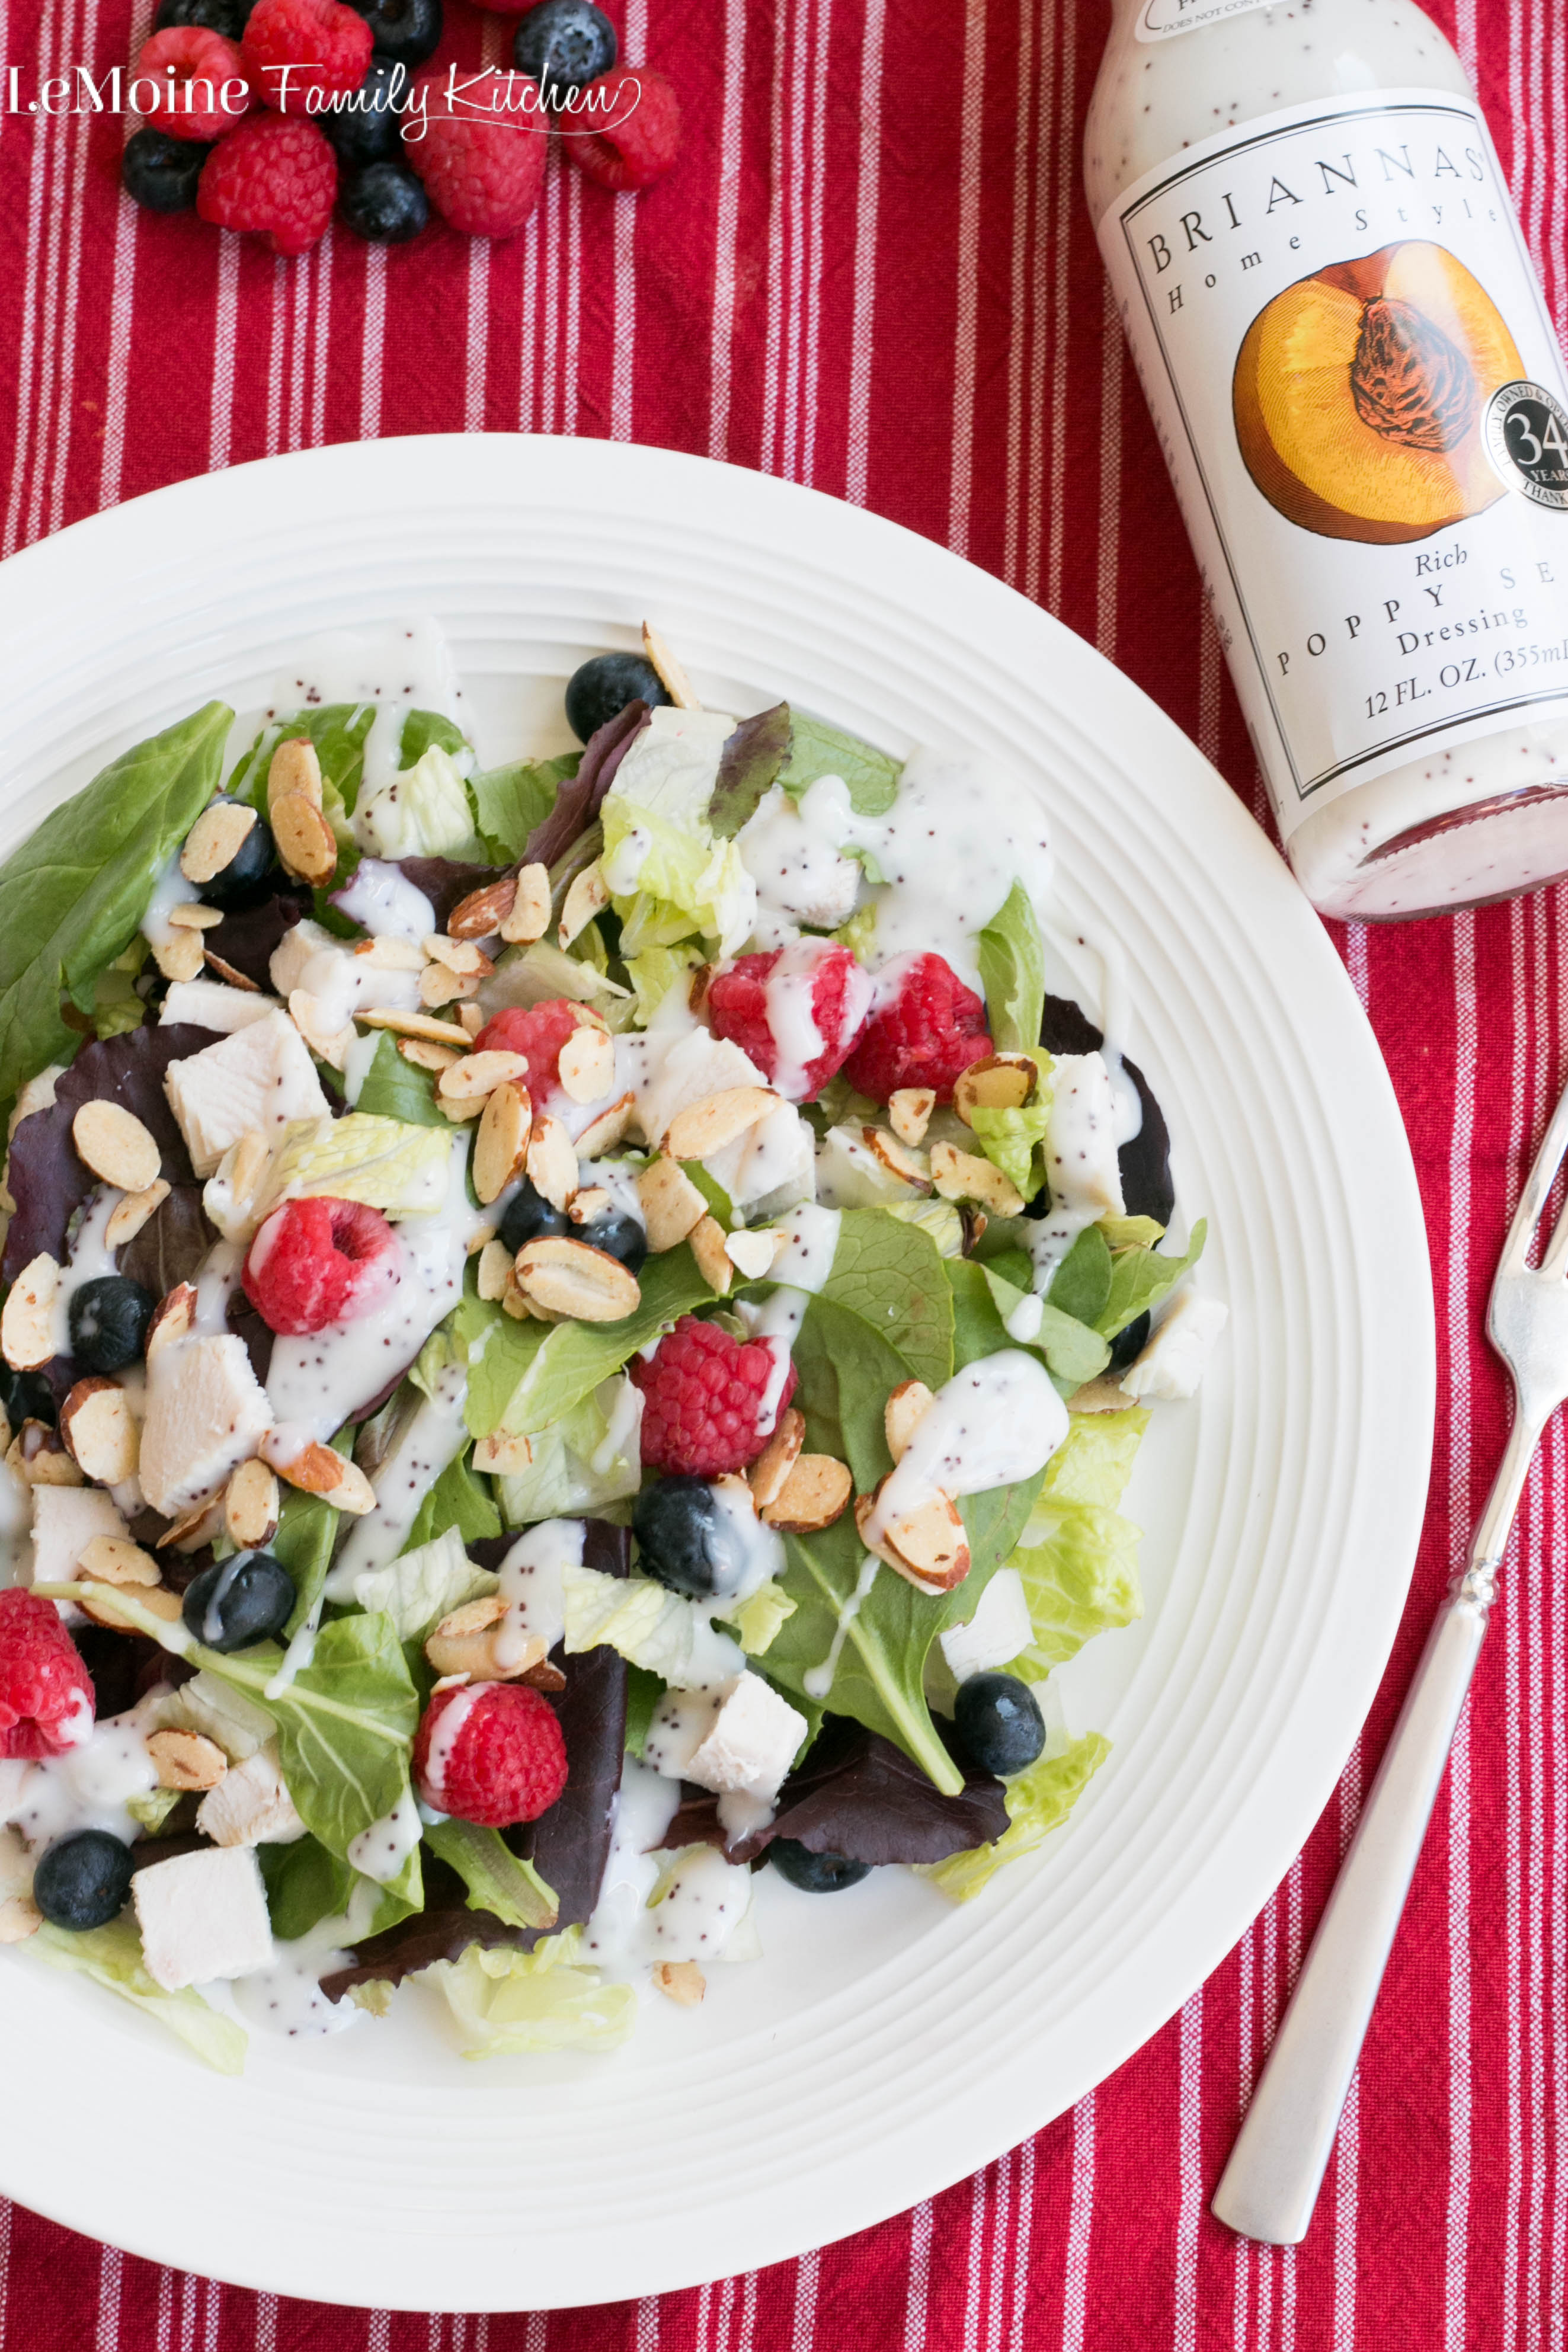 Chicken, Berry & Almond Salad with Poppy Seed Dressing